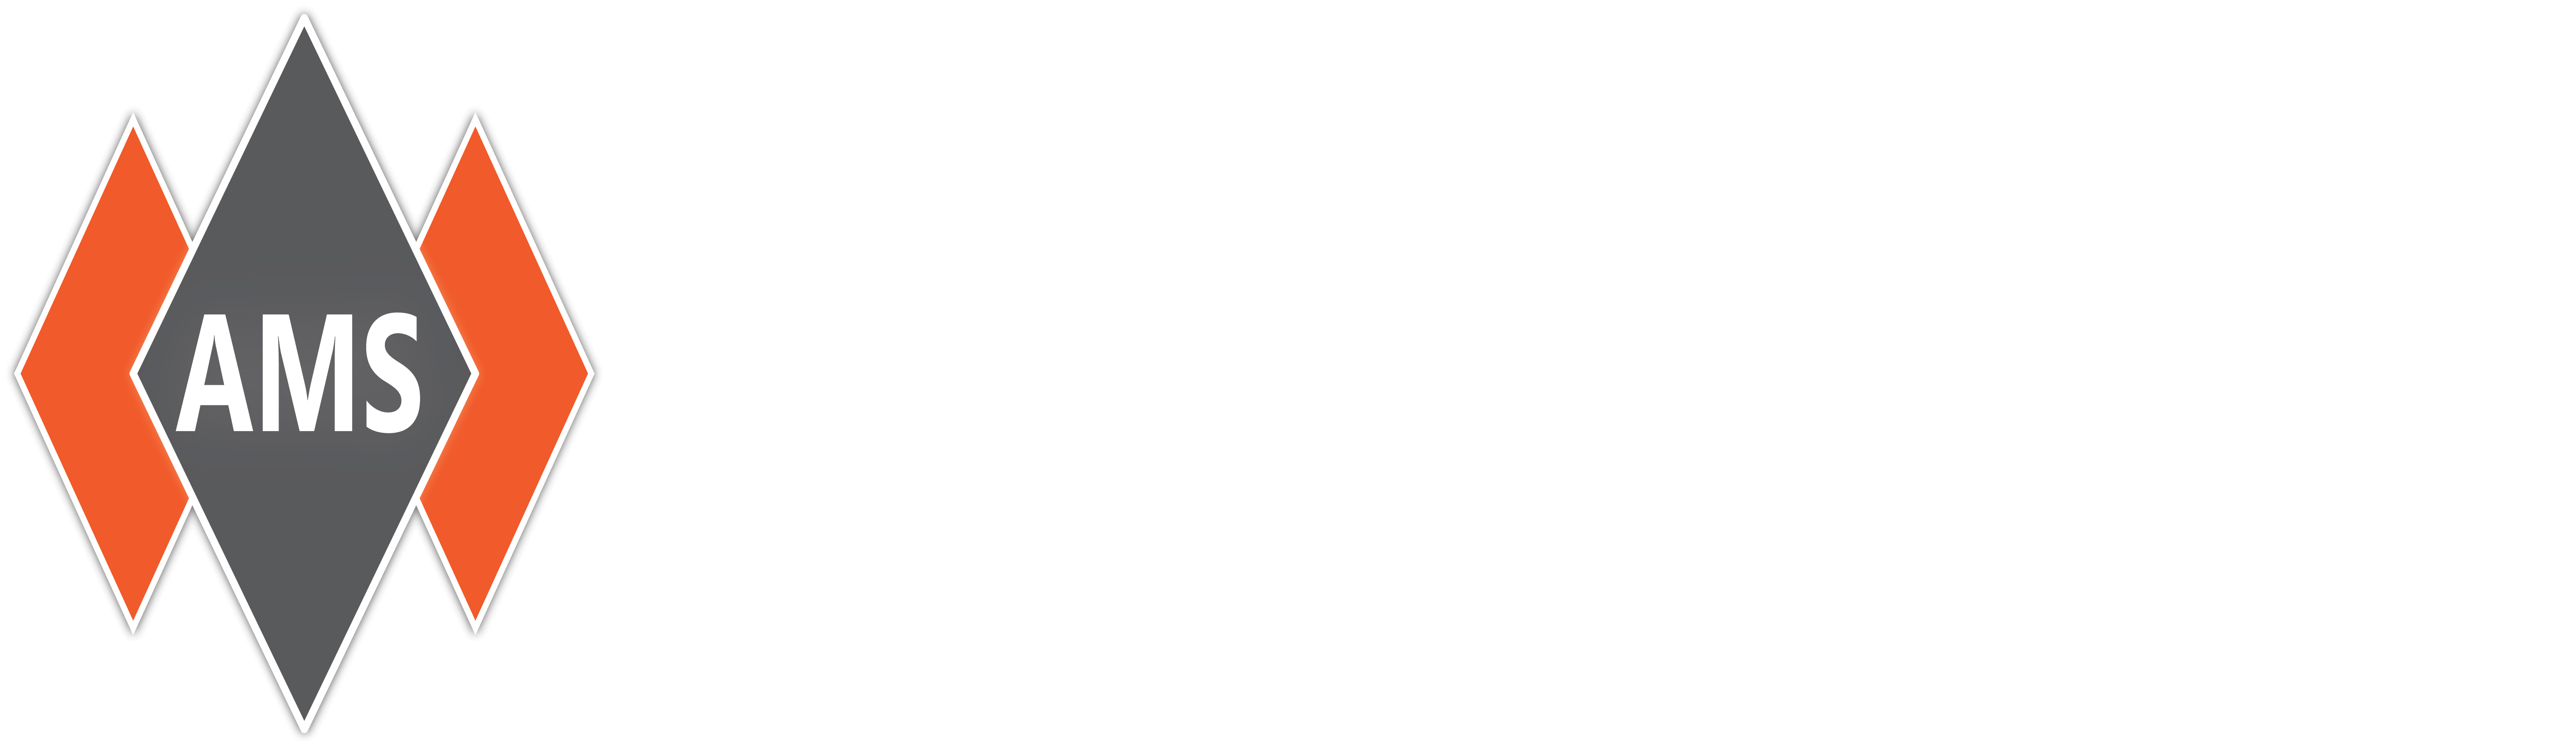 Allied Mechanical Services